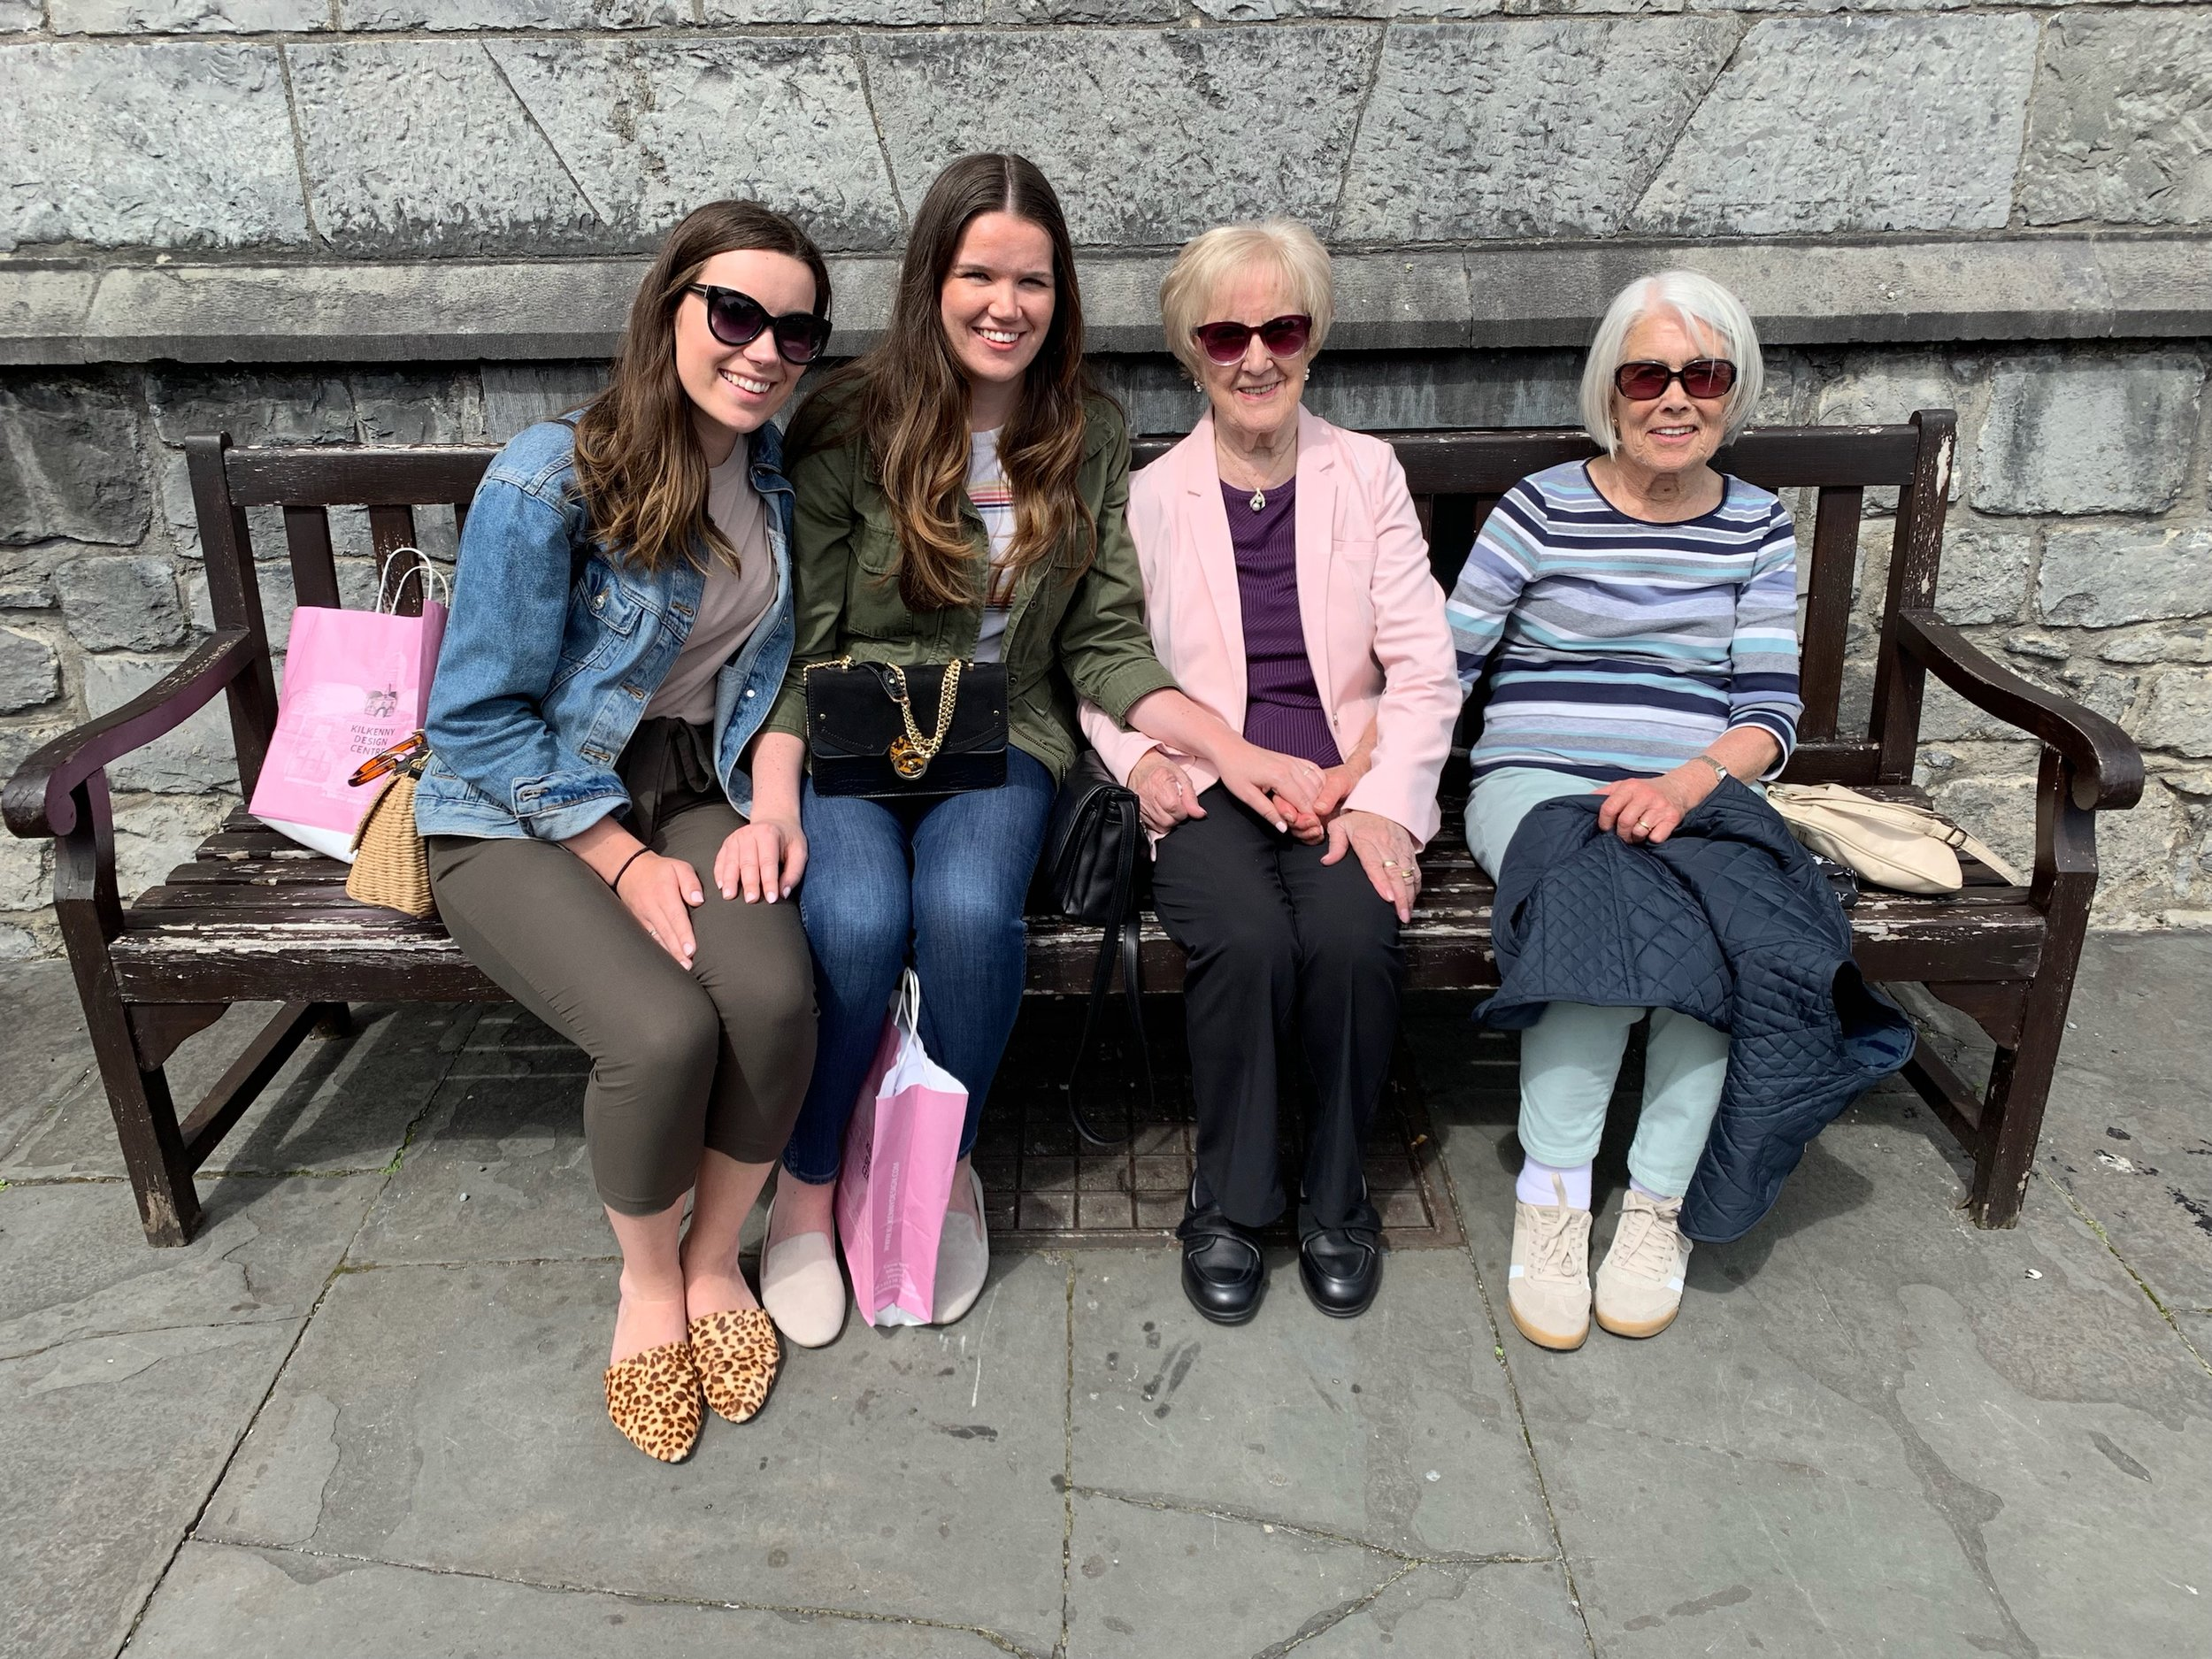 Our day trip to Kilkenny with our Nana (right of me) + great-aunty Sheila (far right).